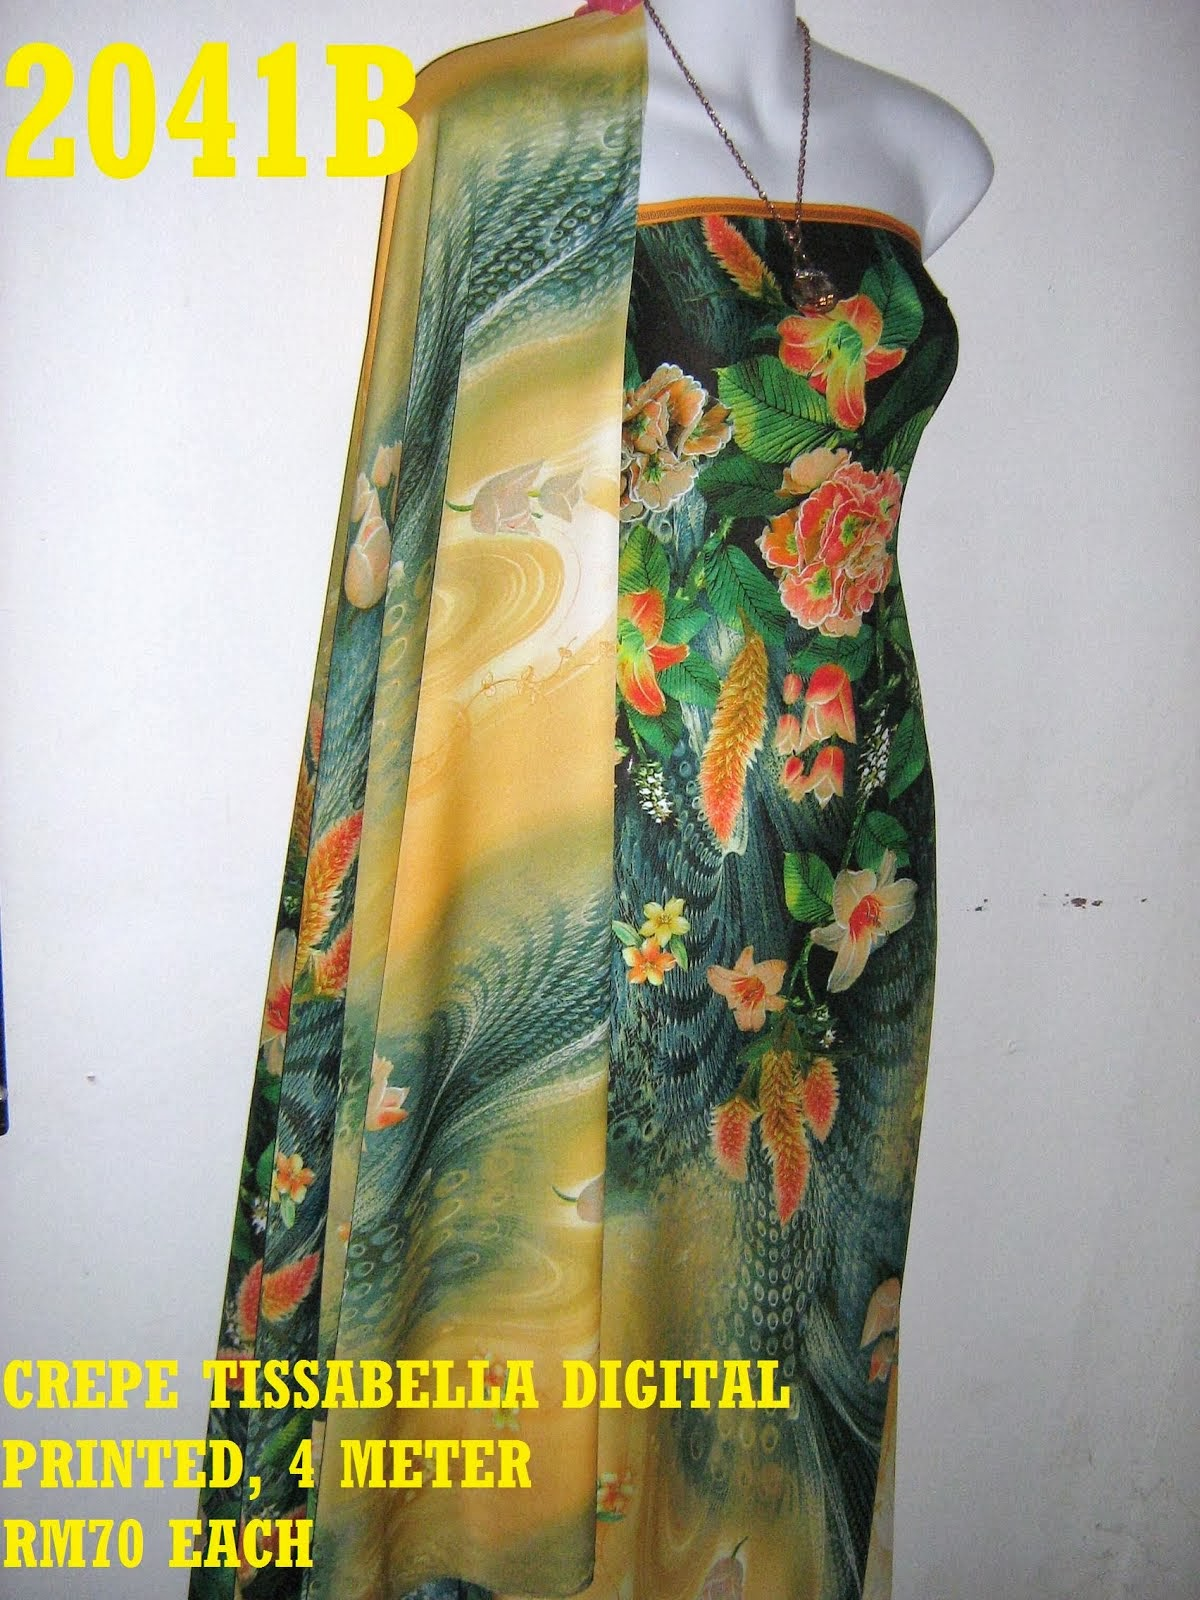 CTD 2041B: CREPE TISSABELLA DIGITAL PRINTED, EXCLUSIVE DESIGN, 4 METER